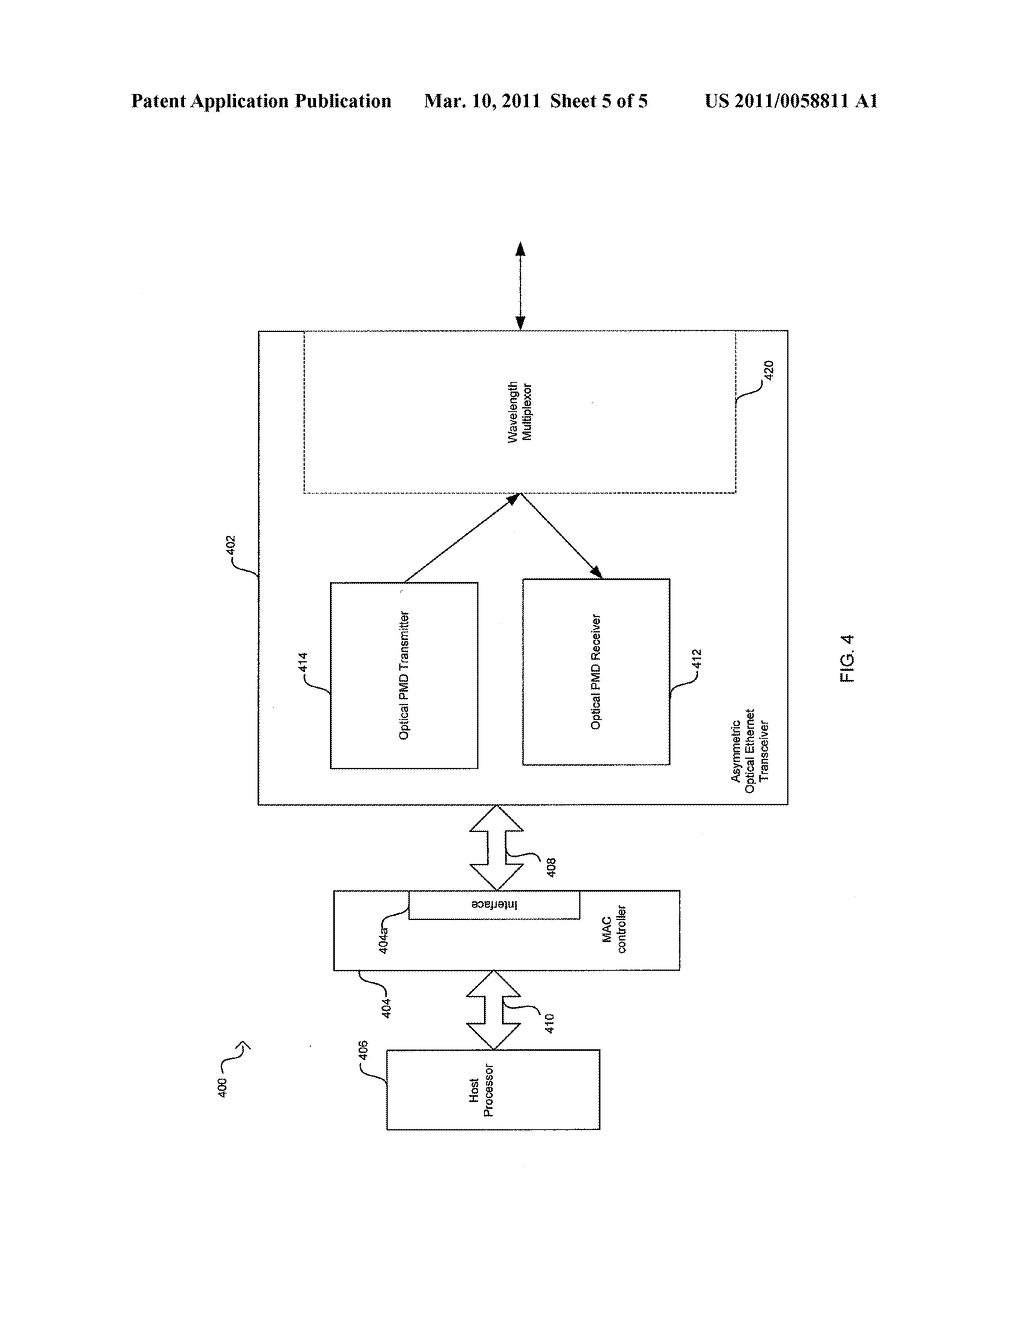 Method And System For An Asymmetric Optical Phy Operation For Ethernet A/V Bridging And Ethernet A/V Bridging Extensions - diagram, schematic, and image 06